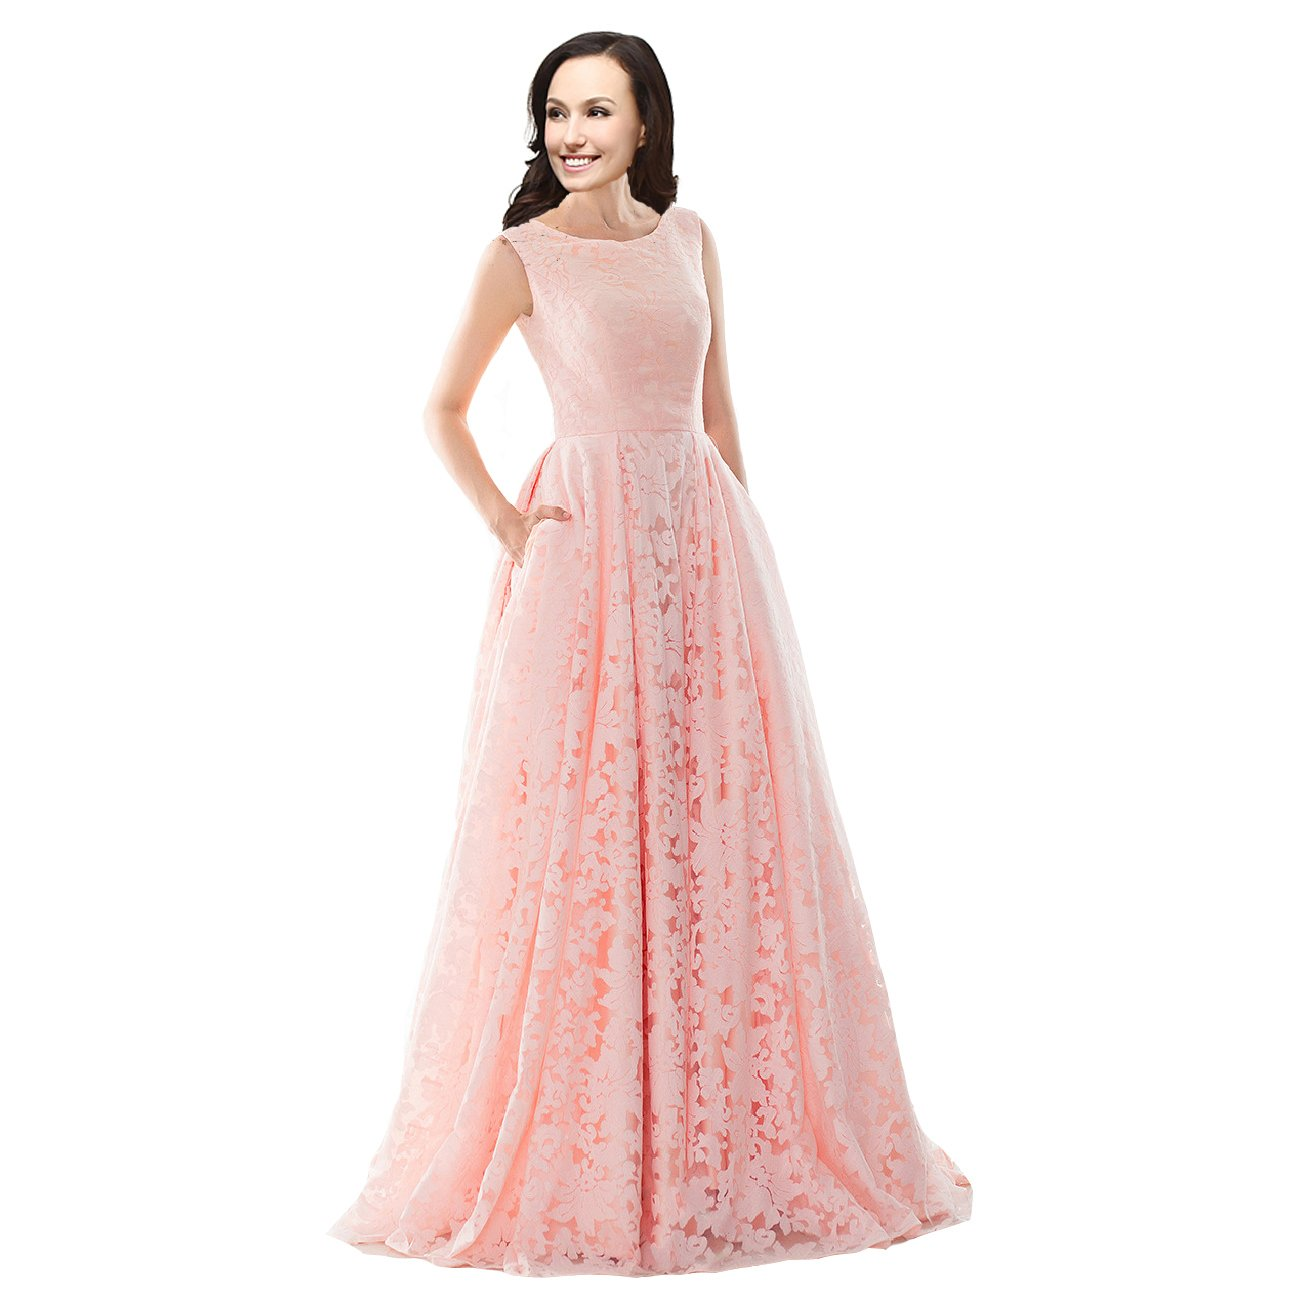 Lemai A Line Lace Corset Simple Sleeveless Long Prom Evening Dresses Plus  Size Peach Pink US 18W